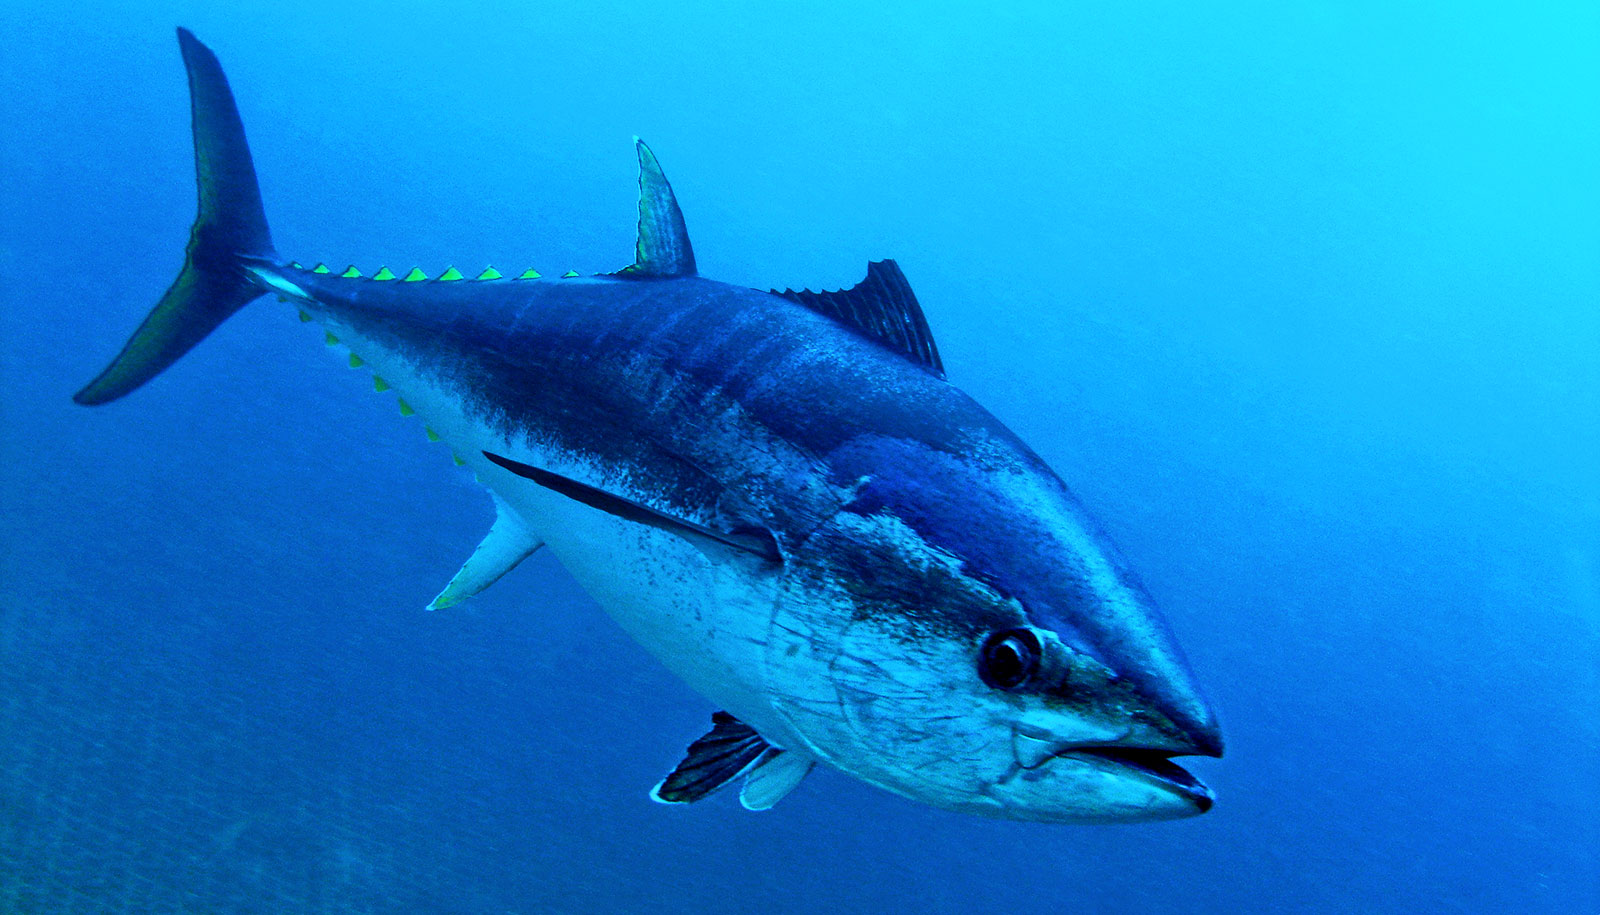 hydraulic system in fins gives tuna extra speed futurity